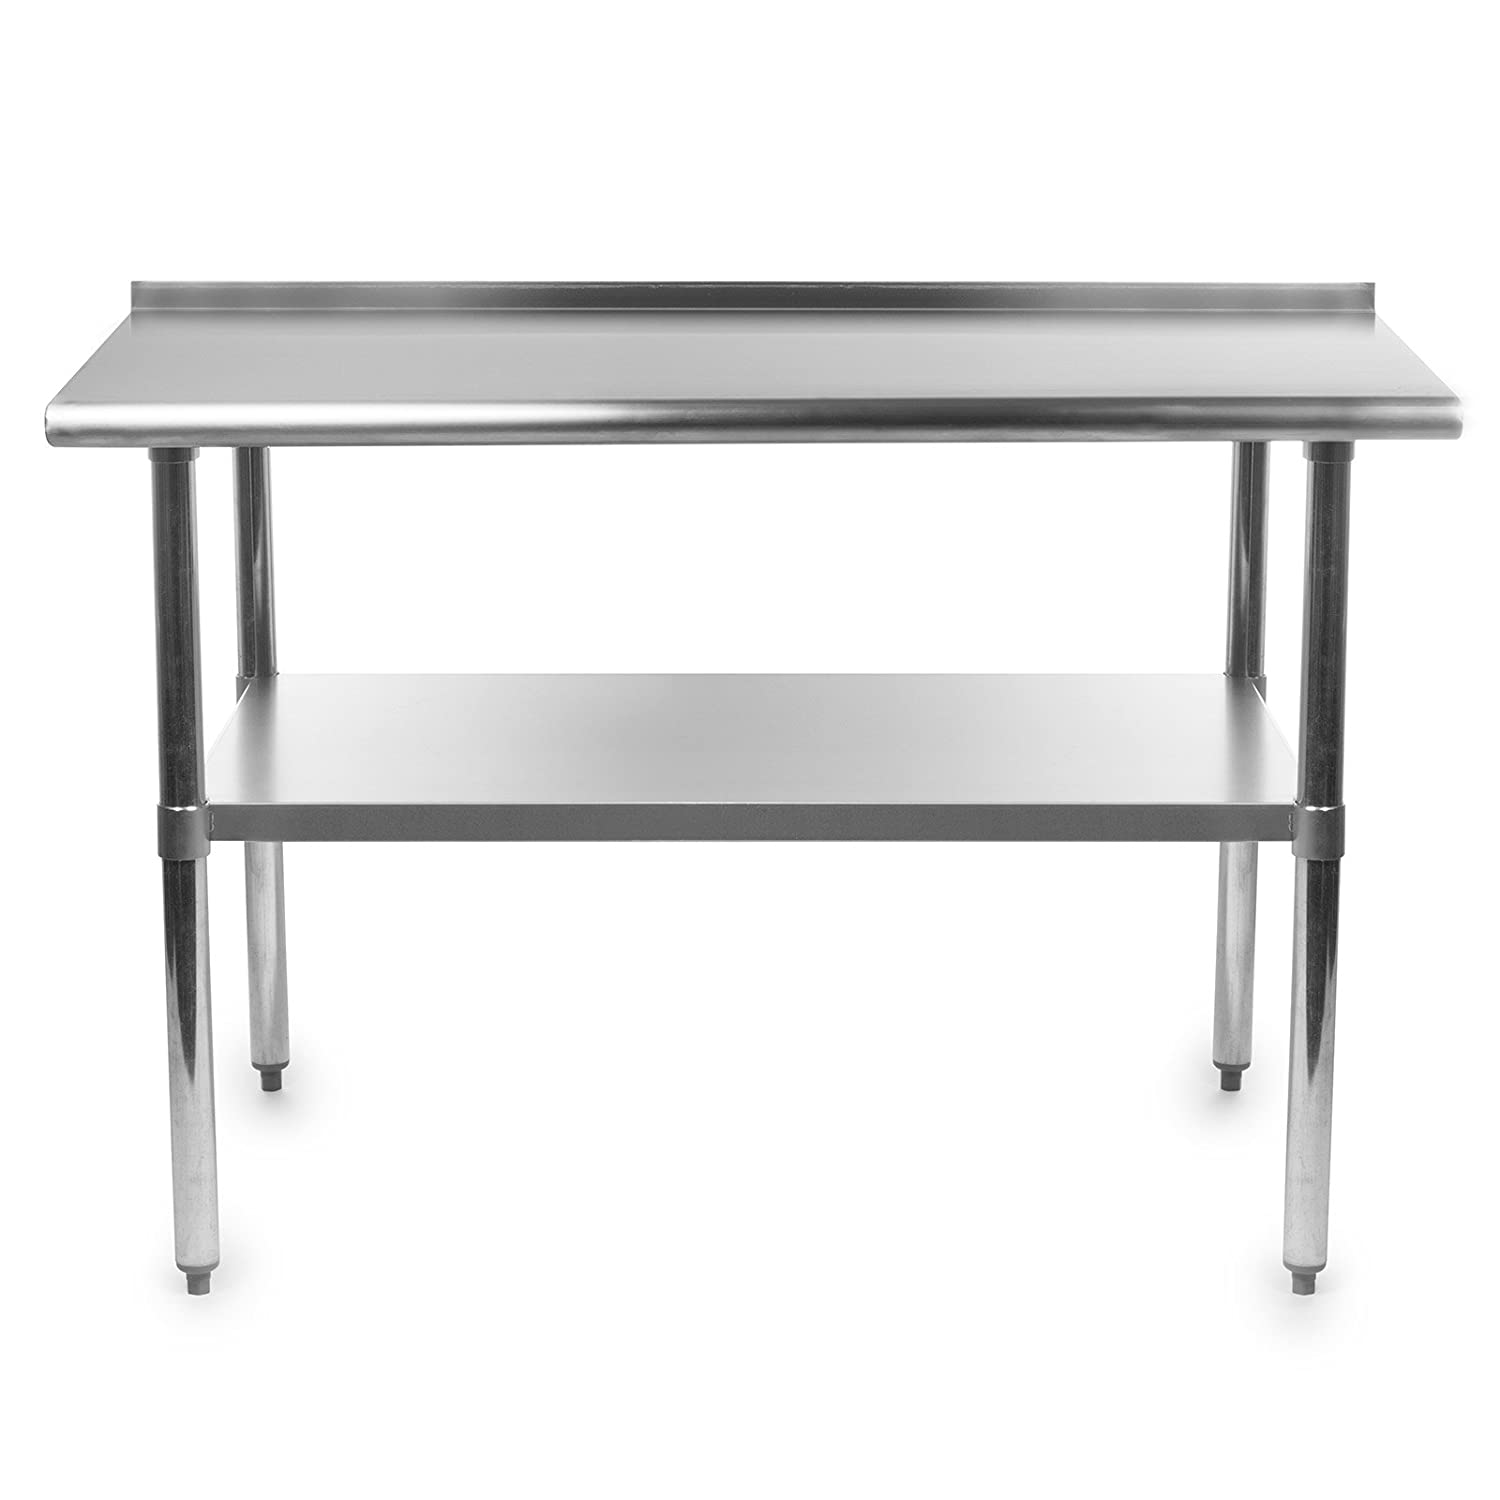 Amazoncom Gridmann Stainless Steel Commercial Kitchen Prep Work - 8 ft stainless steel work table